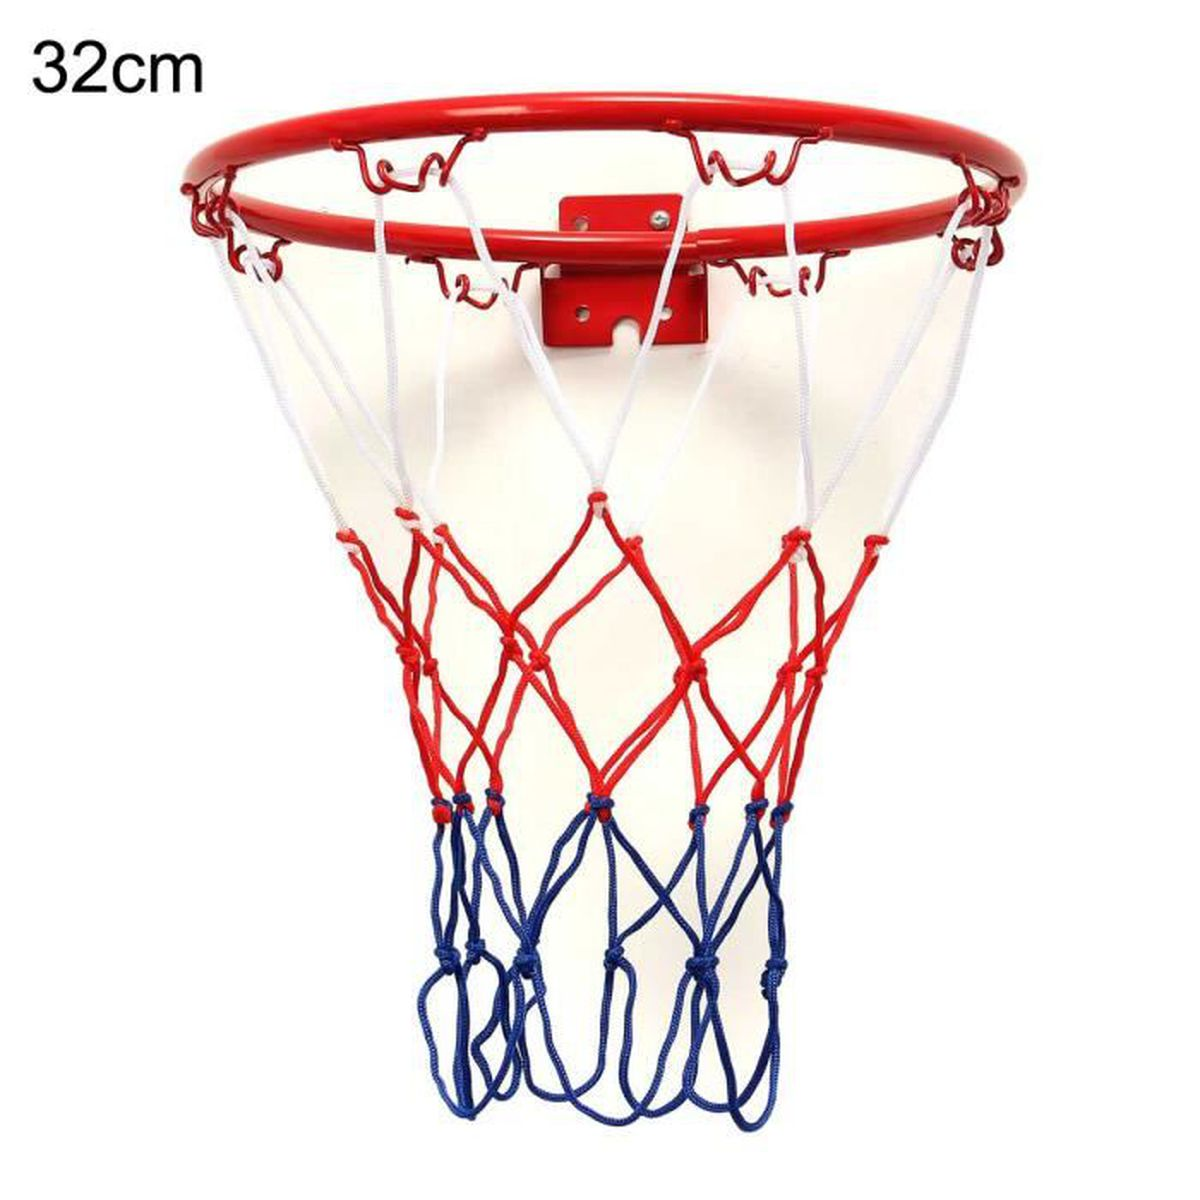 mural basket ball achat vente mural basket ball pas cher cdiscount. Black Bedroom Furniture Sets. Home Design Ideas